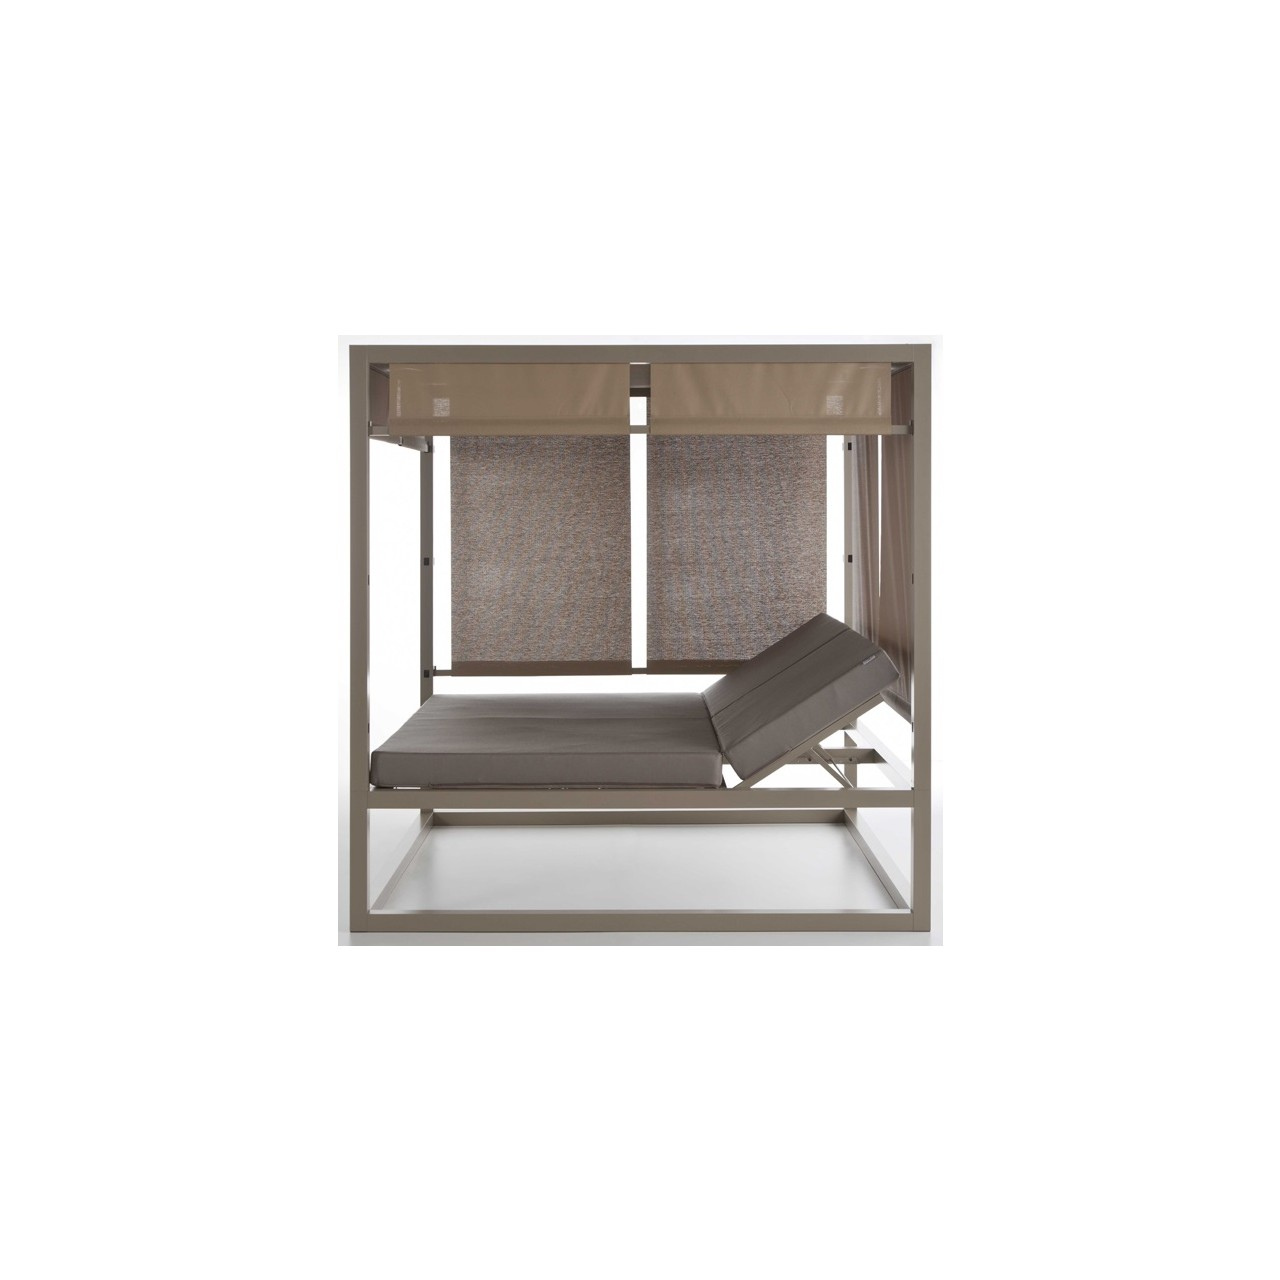 Daybed Elevada Reclinable